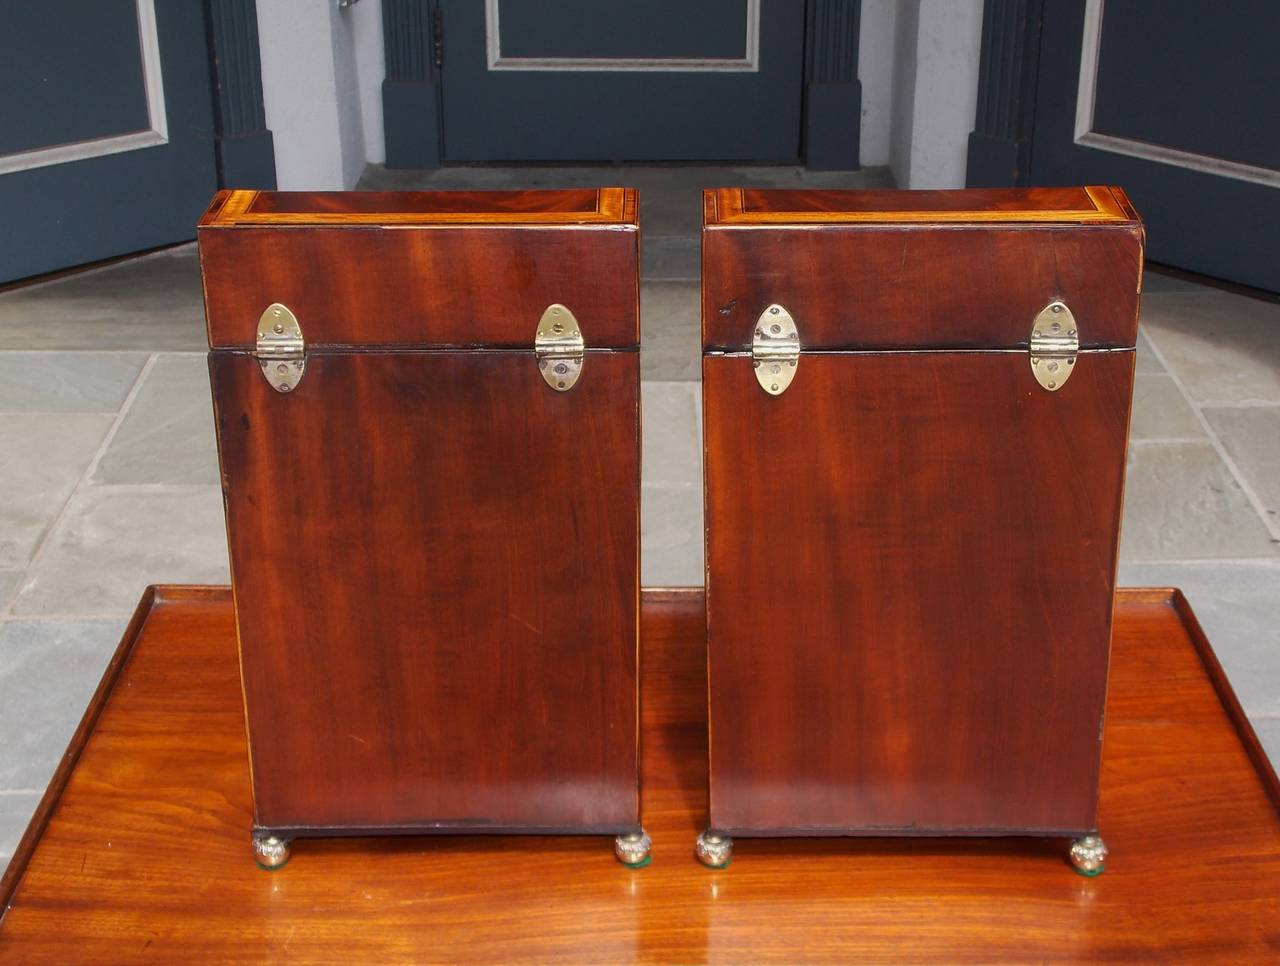 Pair of American Mahogany Inlaid Cutlery Boxes Charleston, SC, Circa 1790 For Sale 5